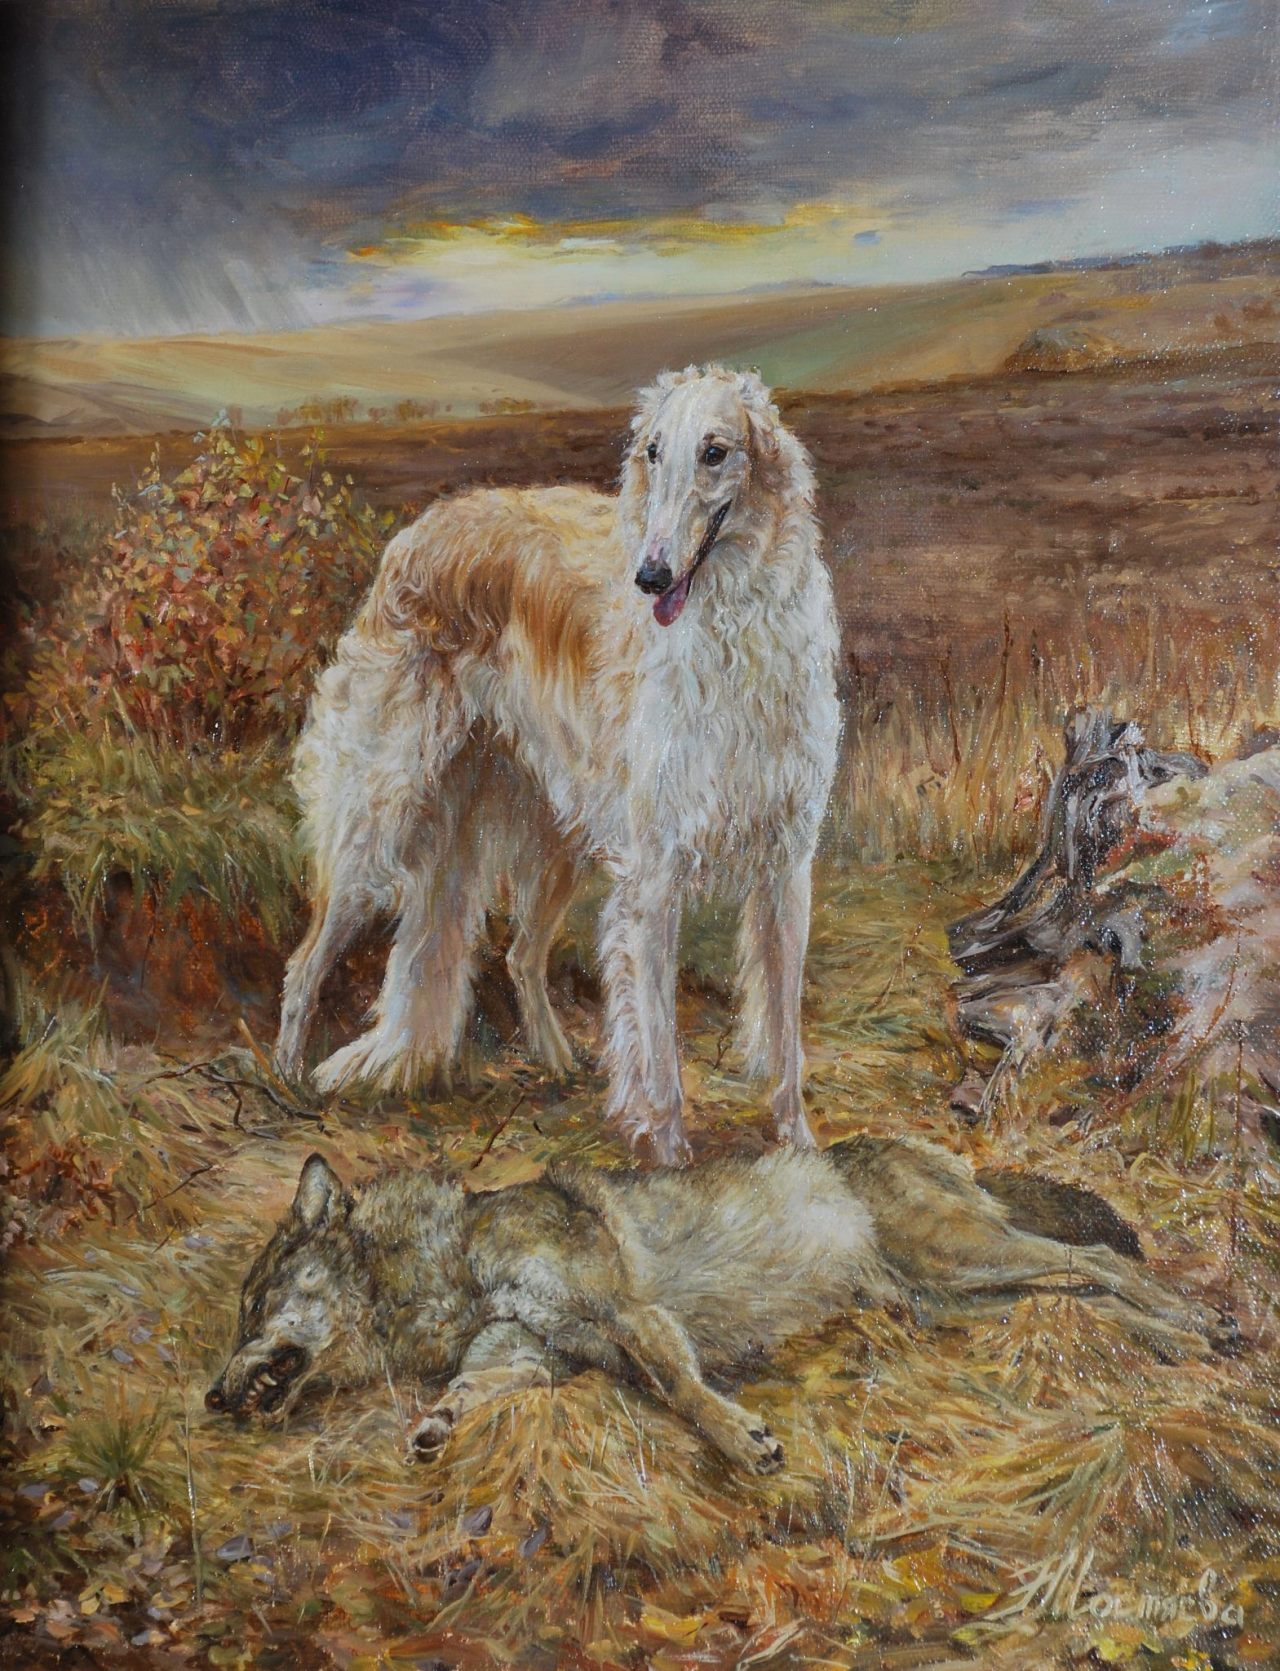 The hunt. Borzoi dog with his kill.